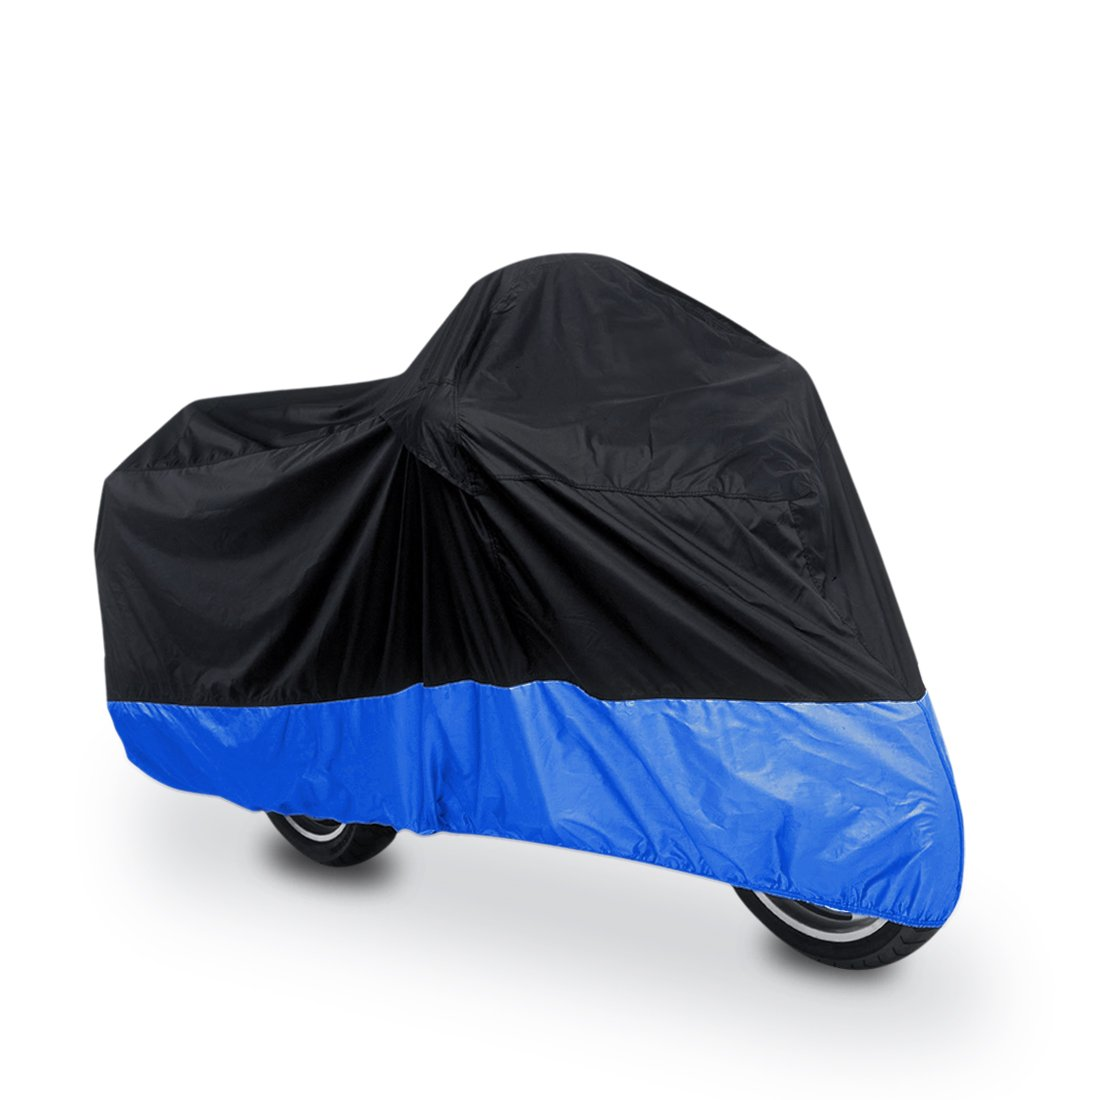 uxcell XL 180T Rain Dust Protector Black+Blue Scooter Motorcycle Cover 96'' Fit to All Scooter & Mopeds Yamaha Honda Suzuki Kawasaki Ducati Bmw